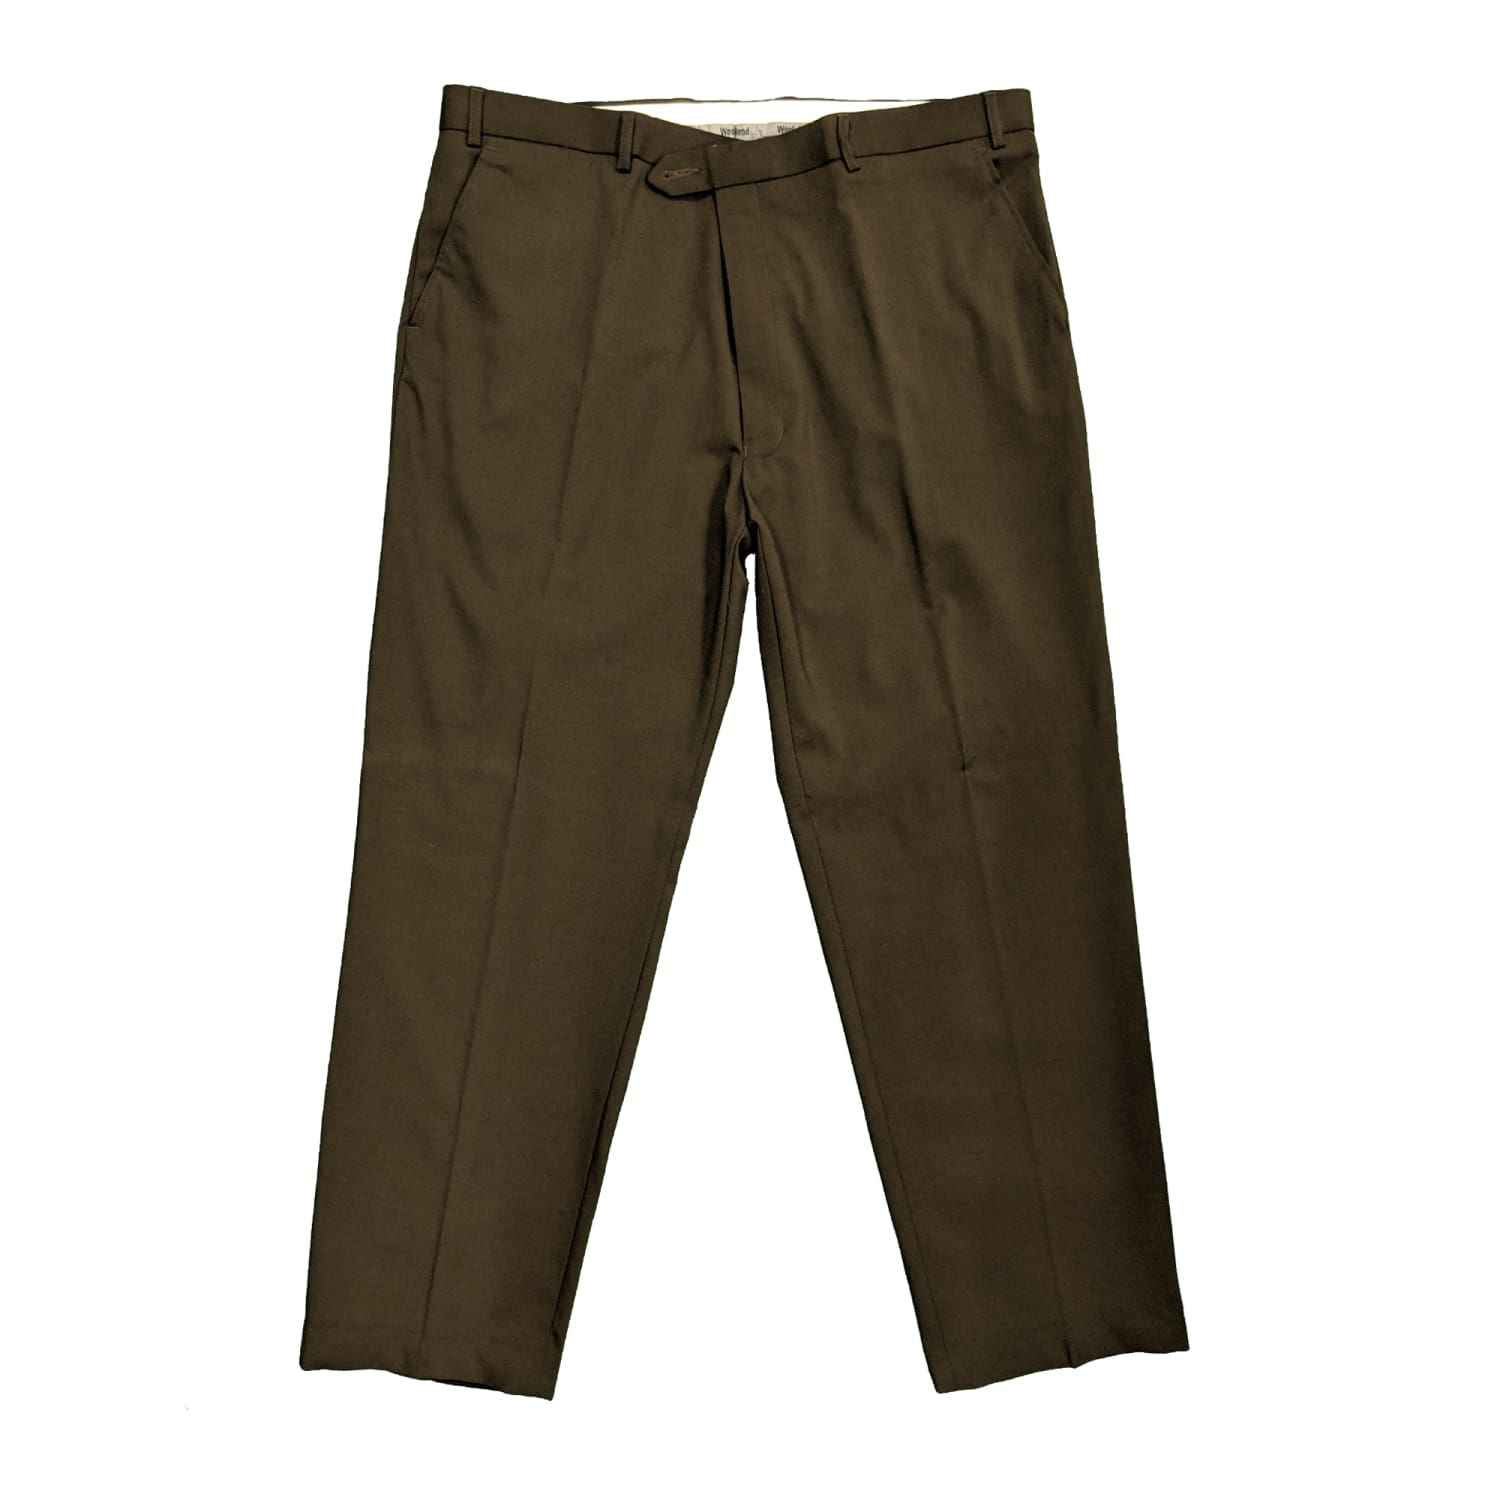 Carabou Trousers - GPWL - Brown 1